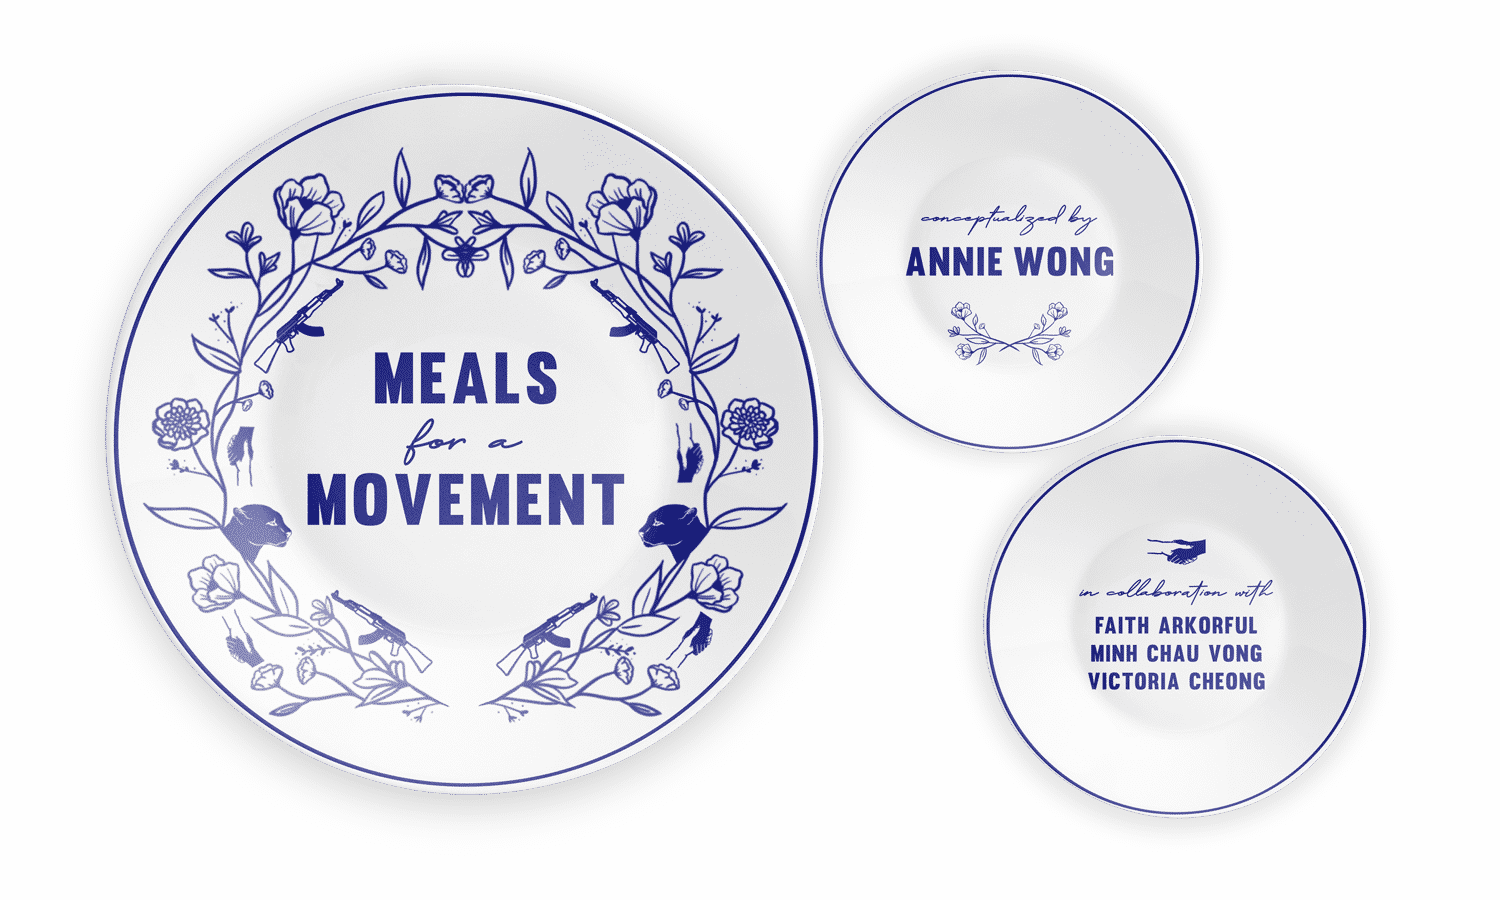 Meals for a Movement: A three-part audio series by Annie Wong in collaboration with Faith Arkorful, Minh Chau Vong and Victoria Cheong.